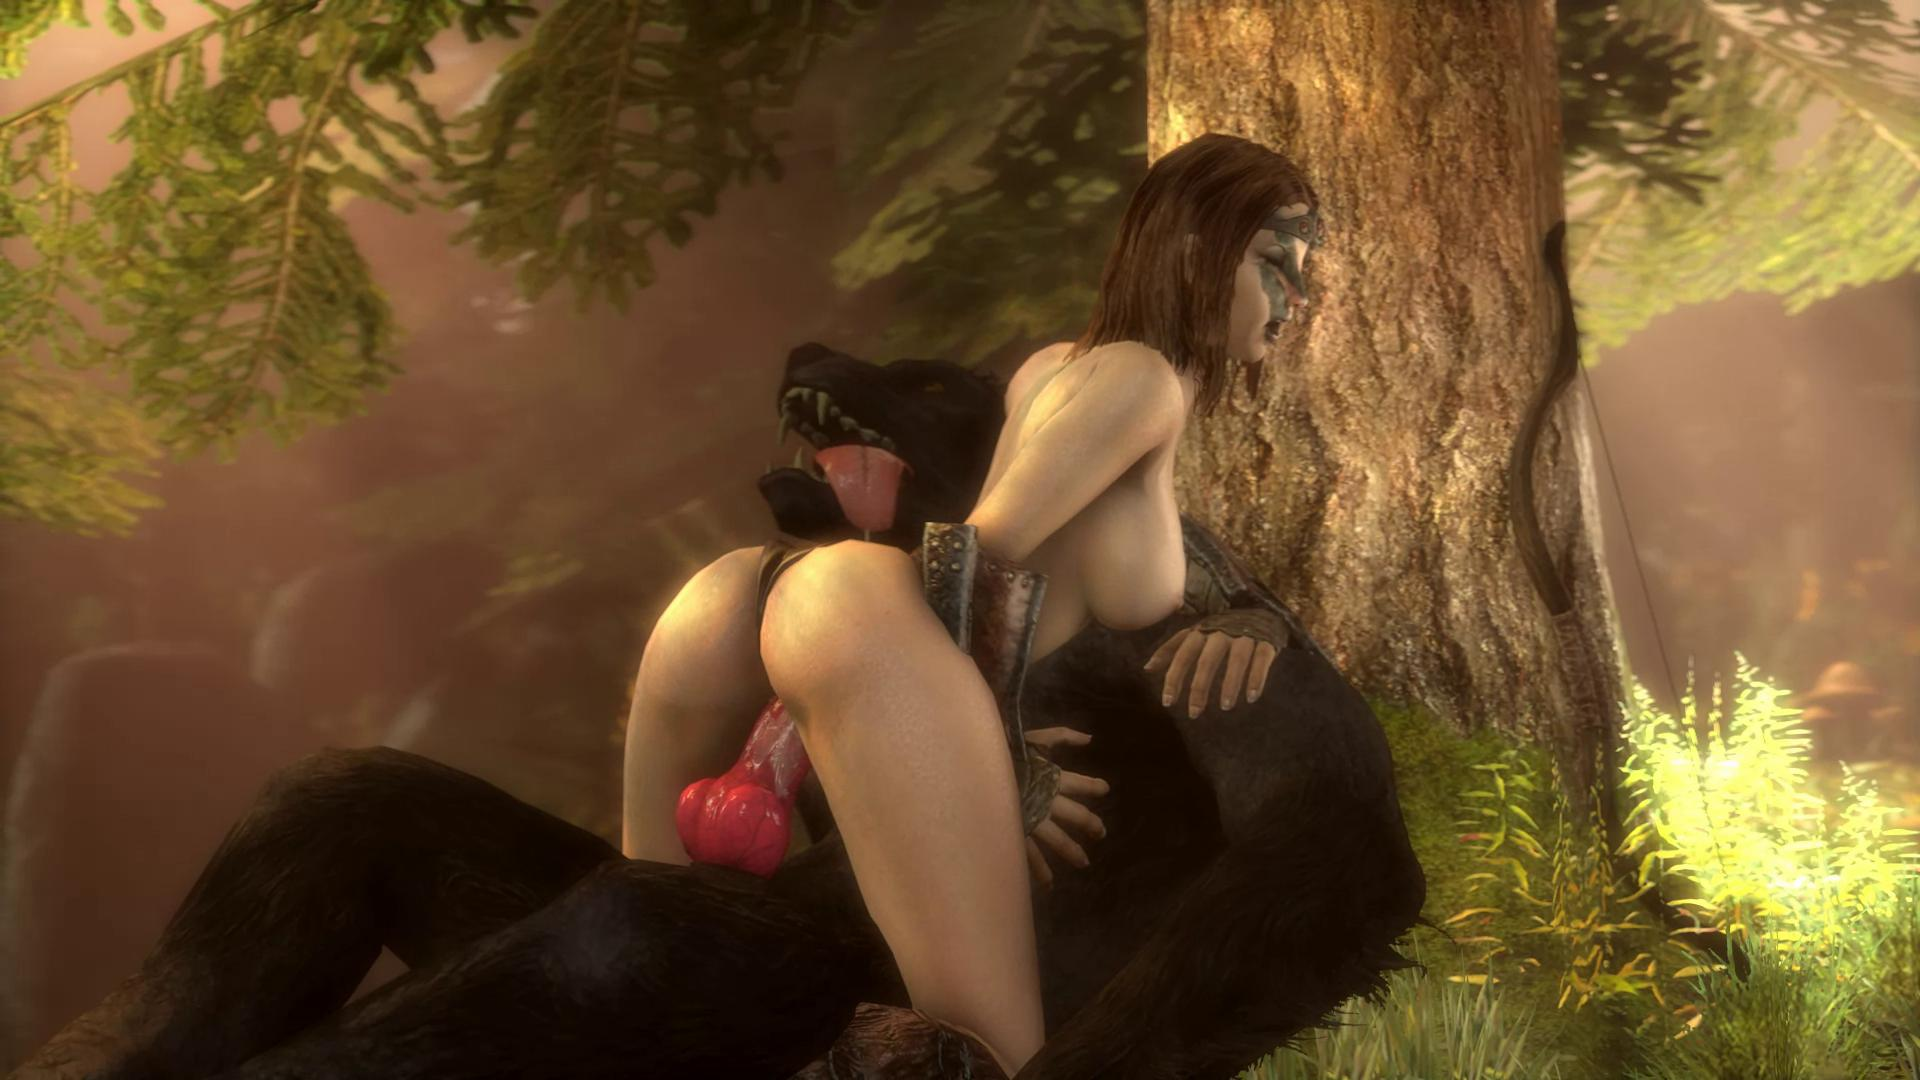 Aela the Huntress Fucks a Werewolf